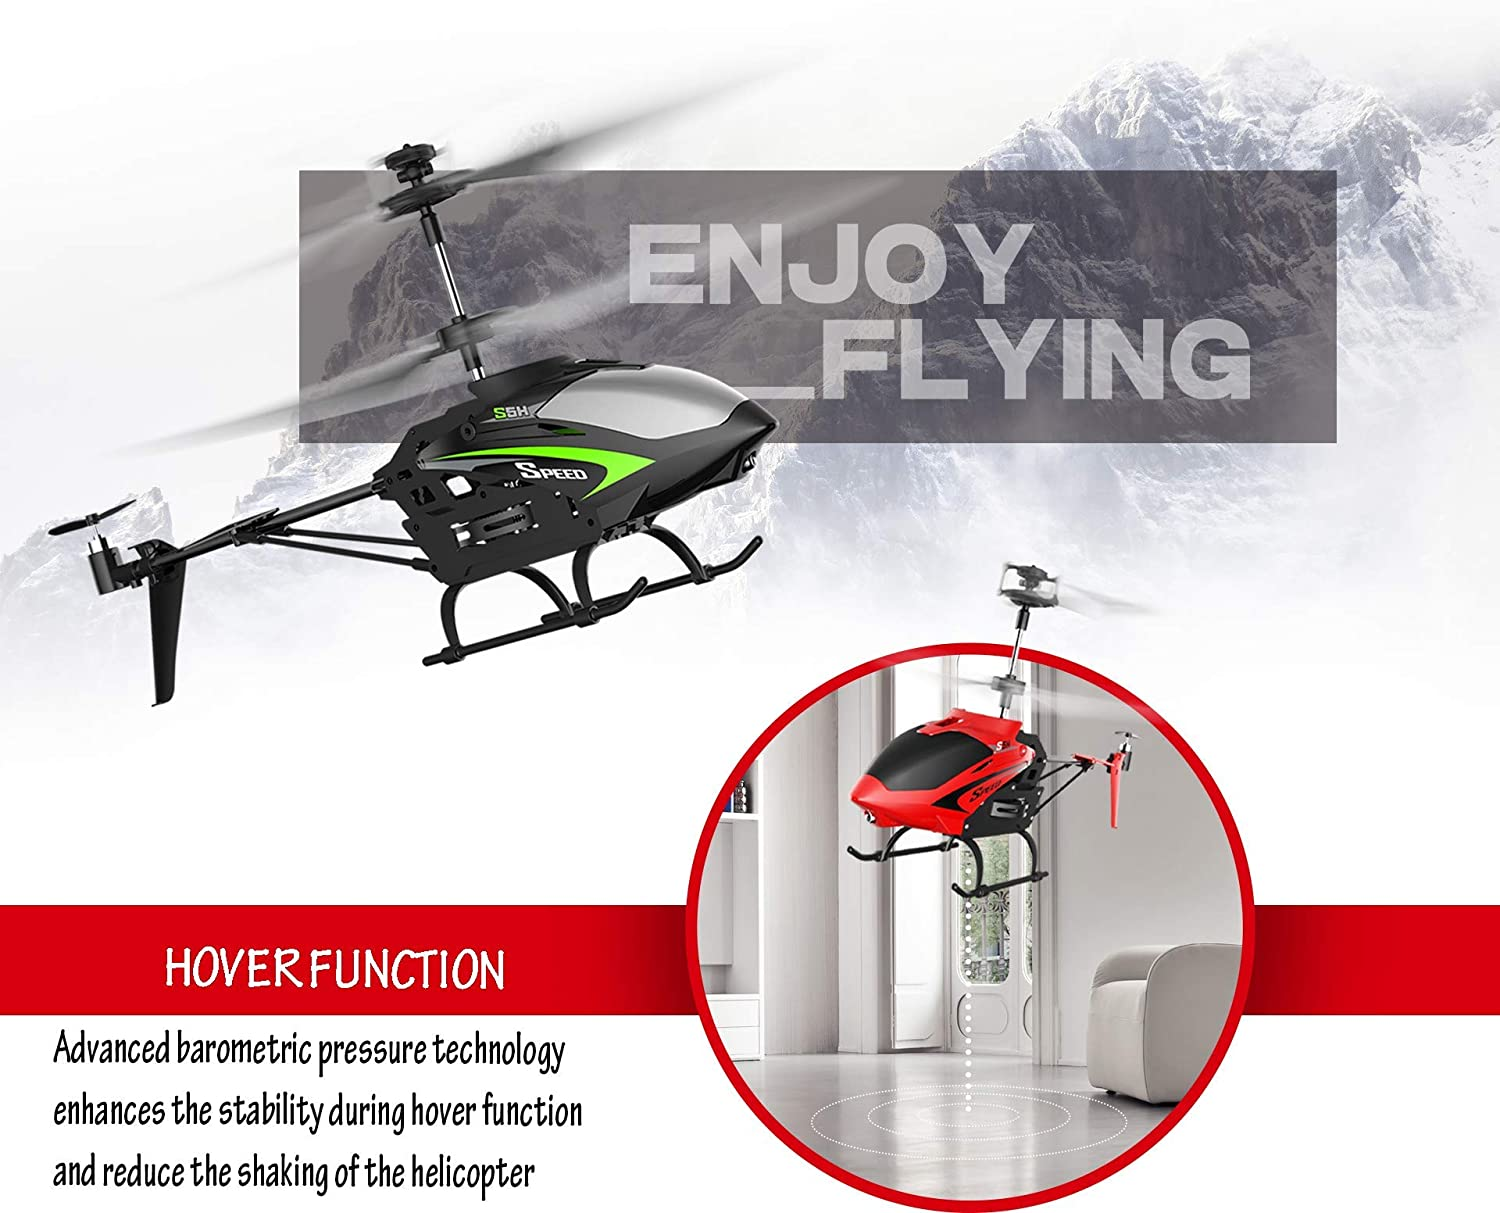 TUSEASY S5H Remote Control Helicopter Altitude Hold RC Helicopters with Gyro for Kids Adults 3 Channel One Key Take Off or Landing Red